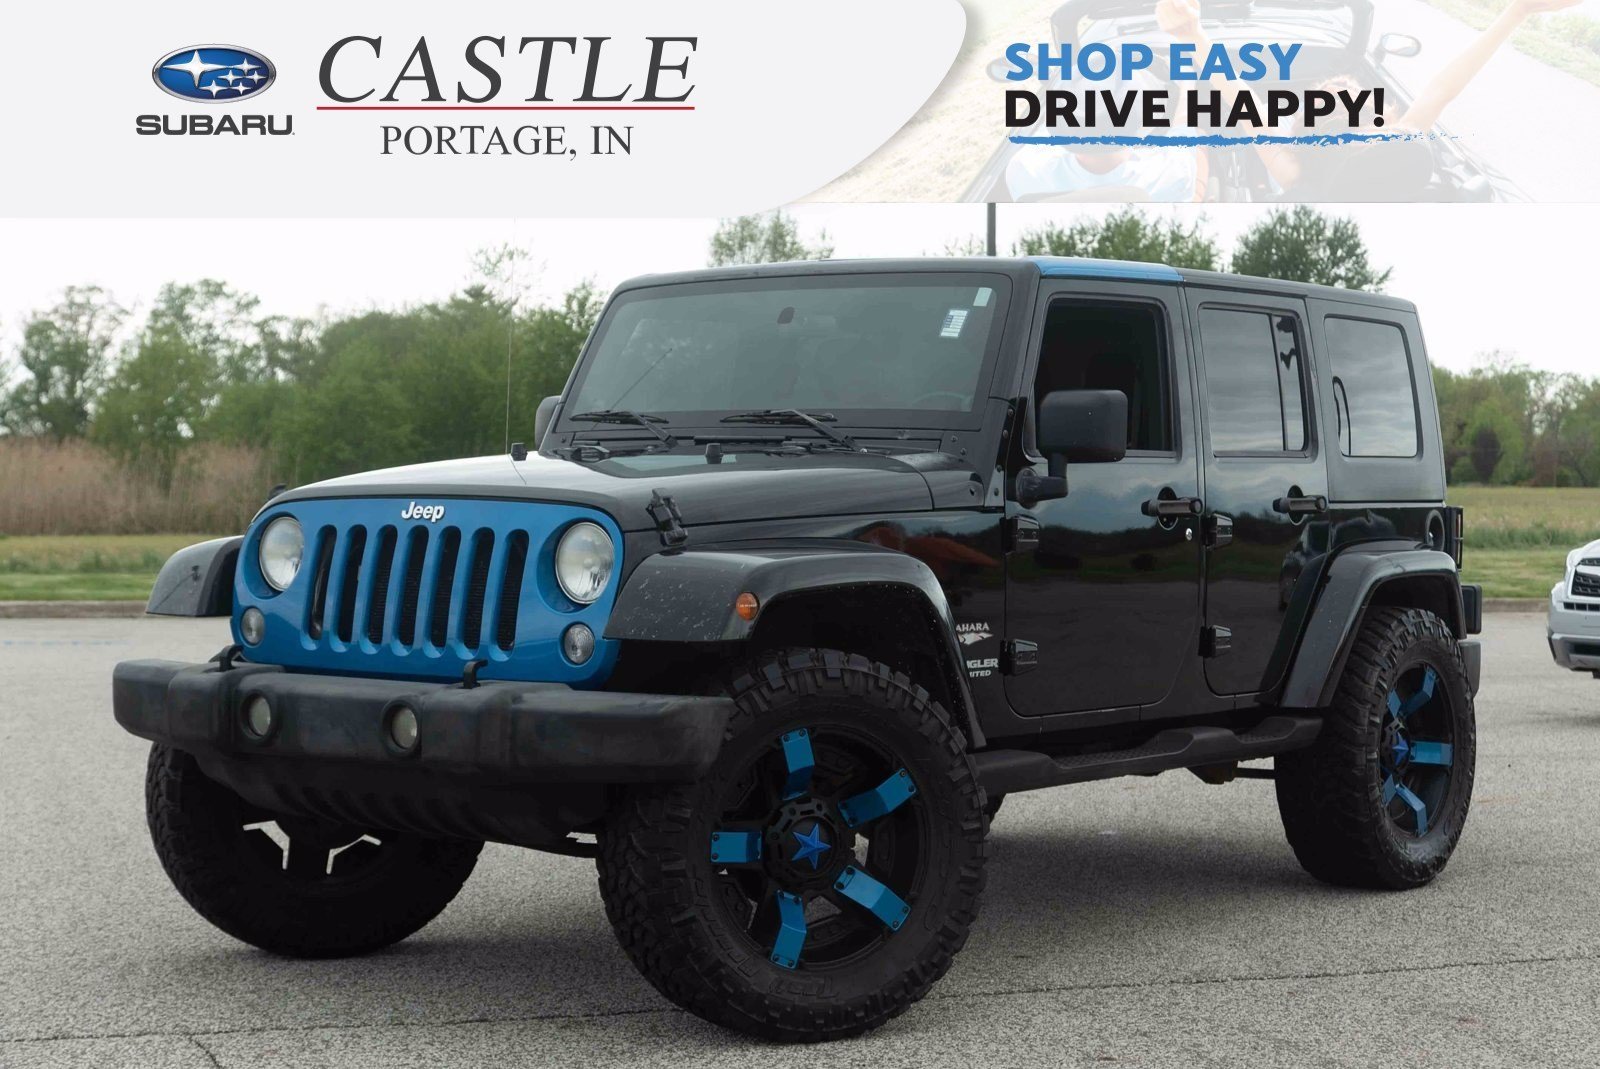 Pre-Owned 2007 Jeep Wrangler Unlimited Sahara